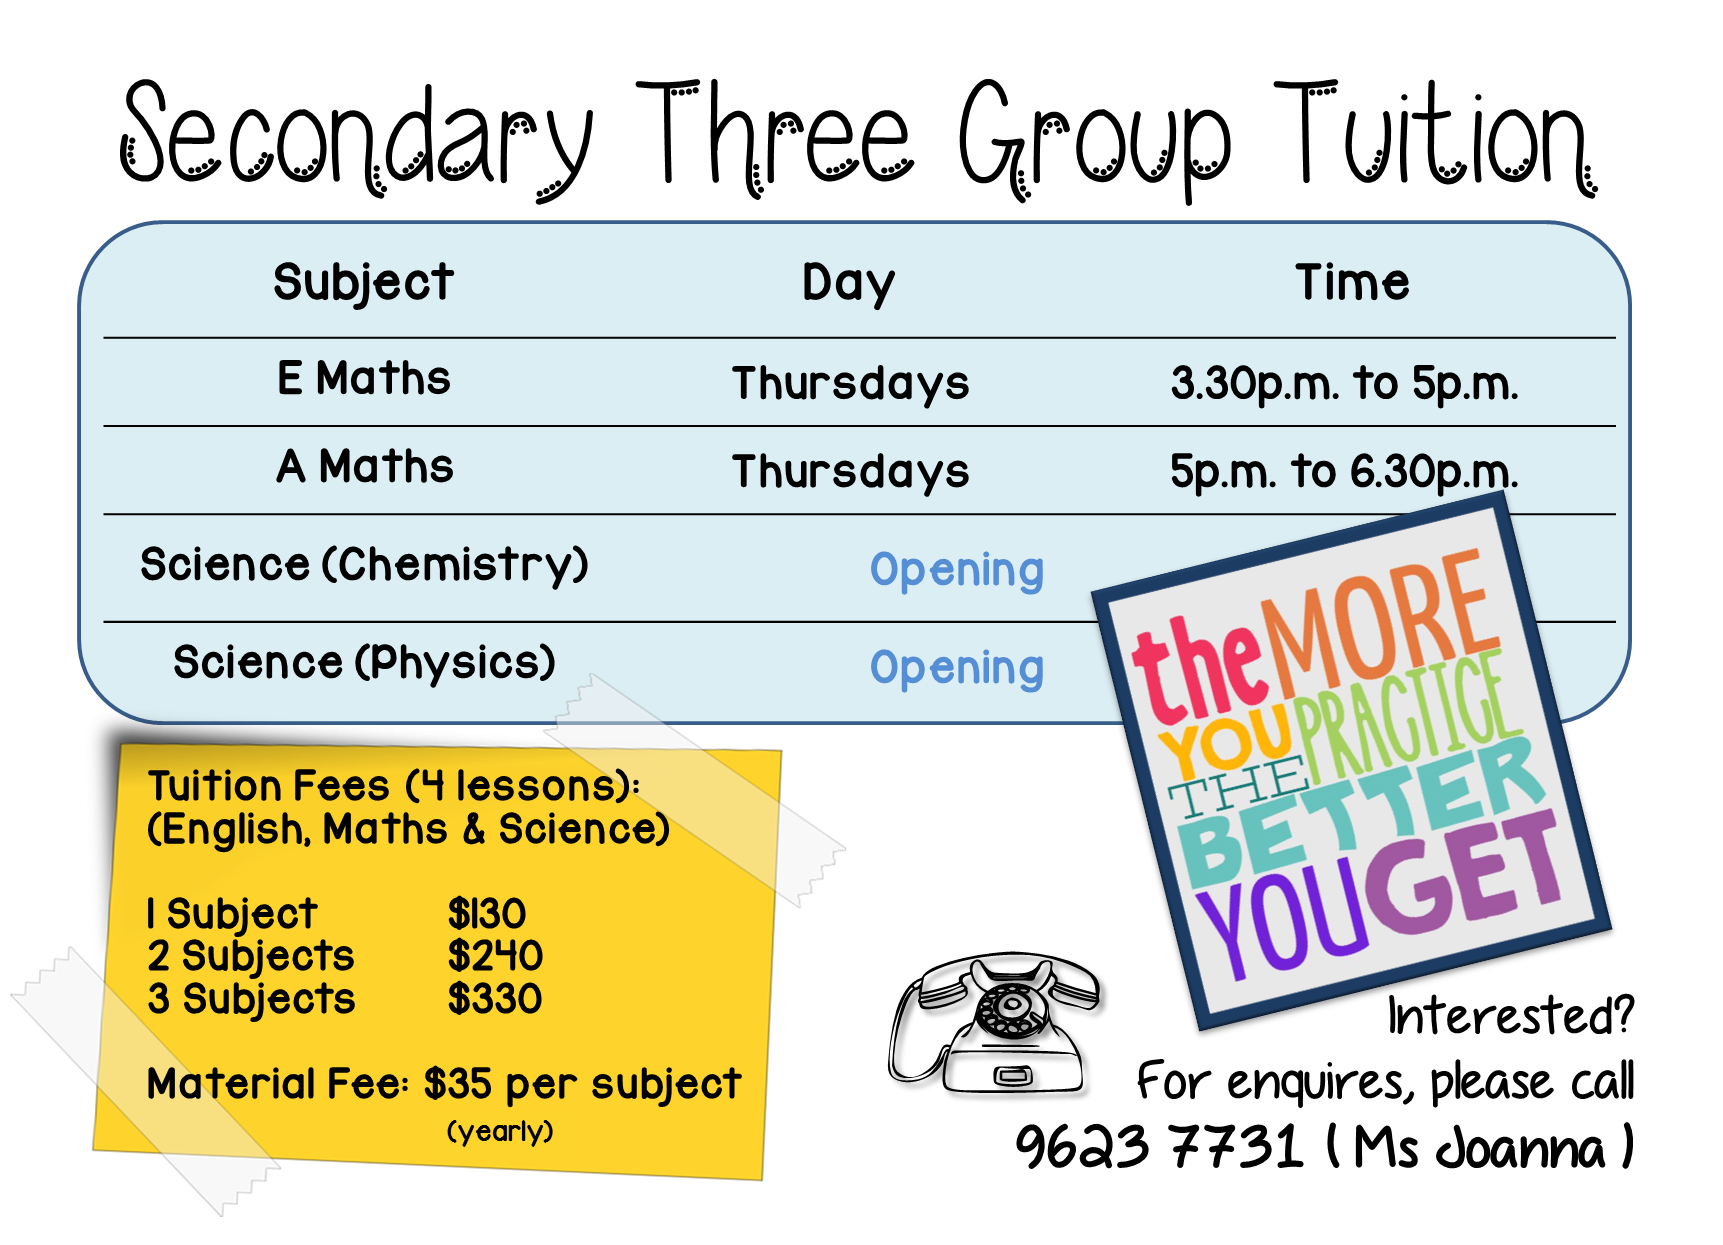 Sec 3 A Maths Group Tuition (2017)